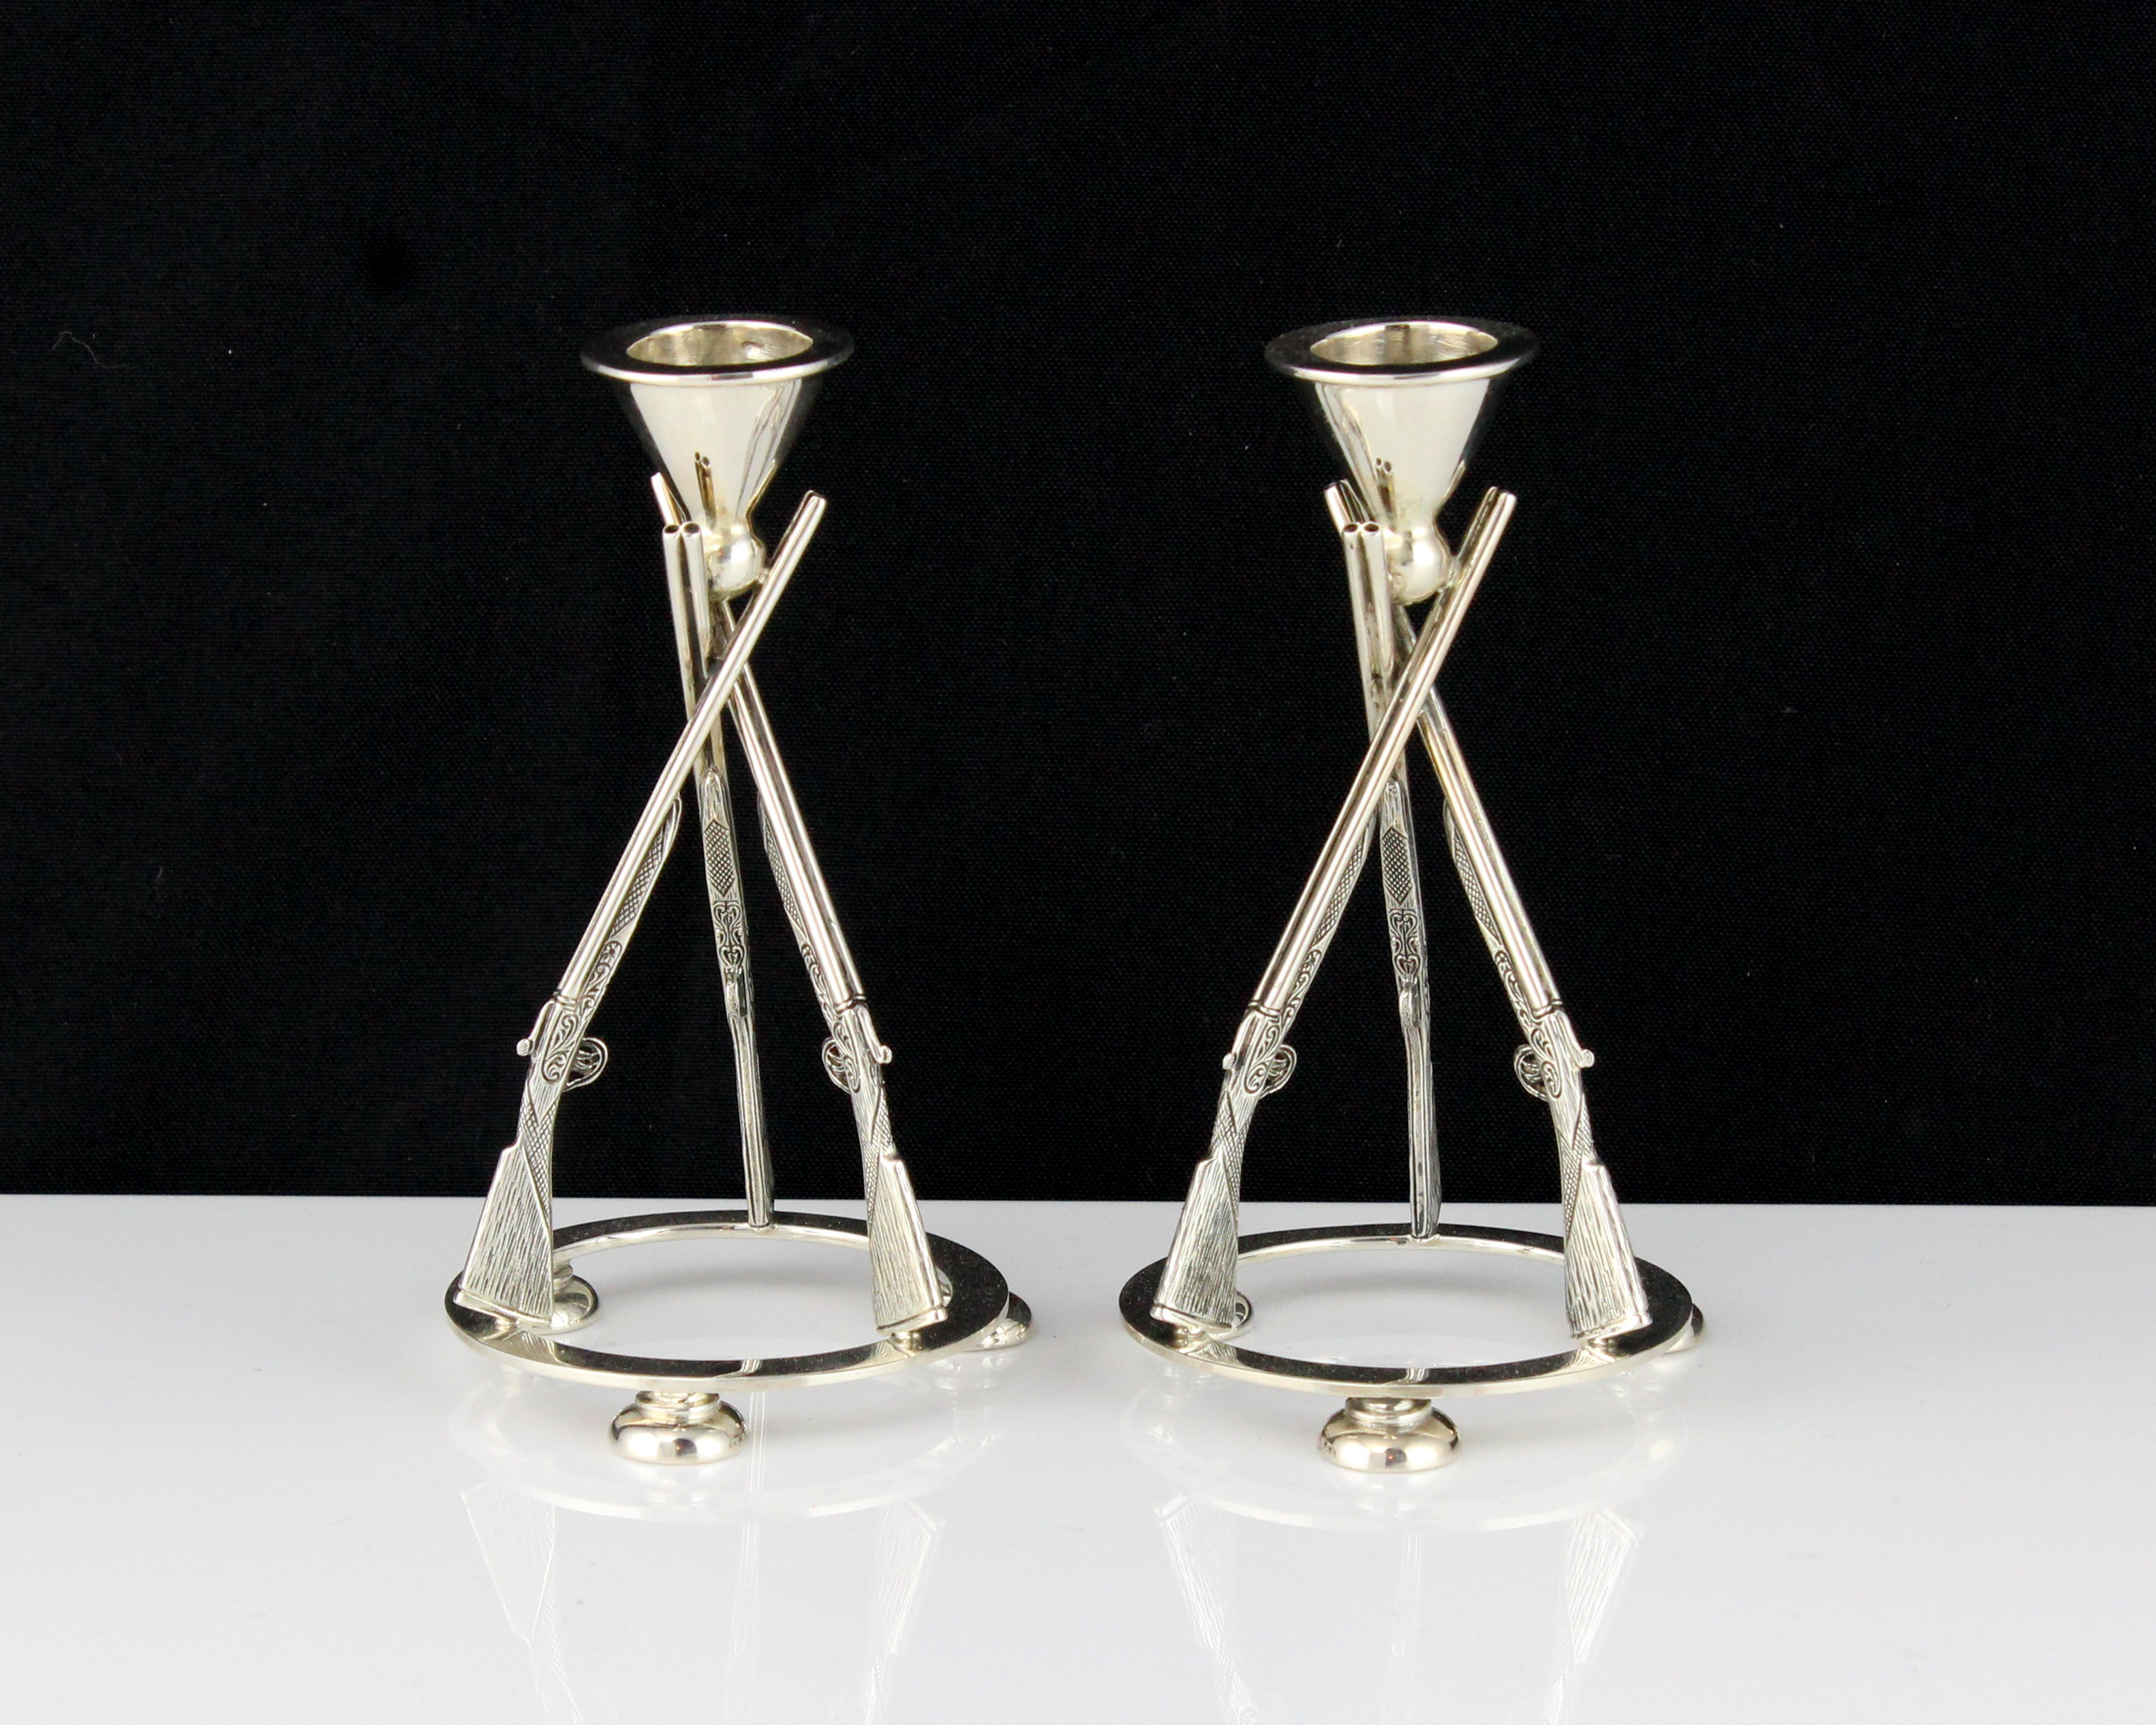 A pair of contemporary Sterling Silver rifle candlesticks by Francis Howard Ltd, Sheffield 2015 each